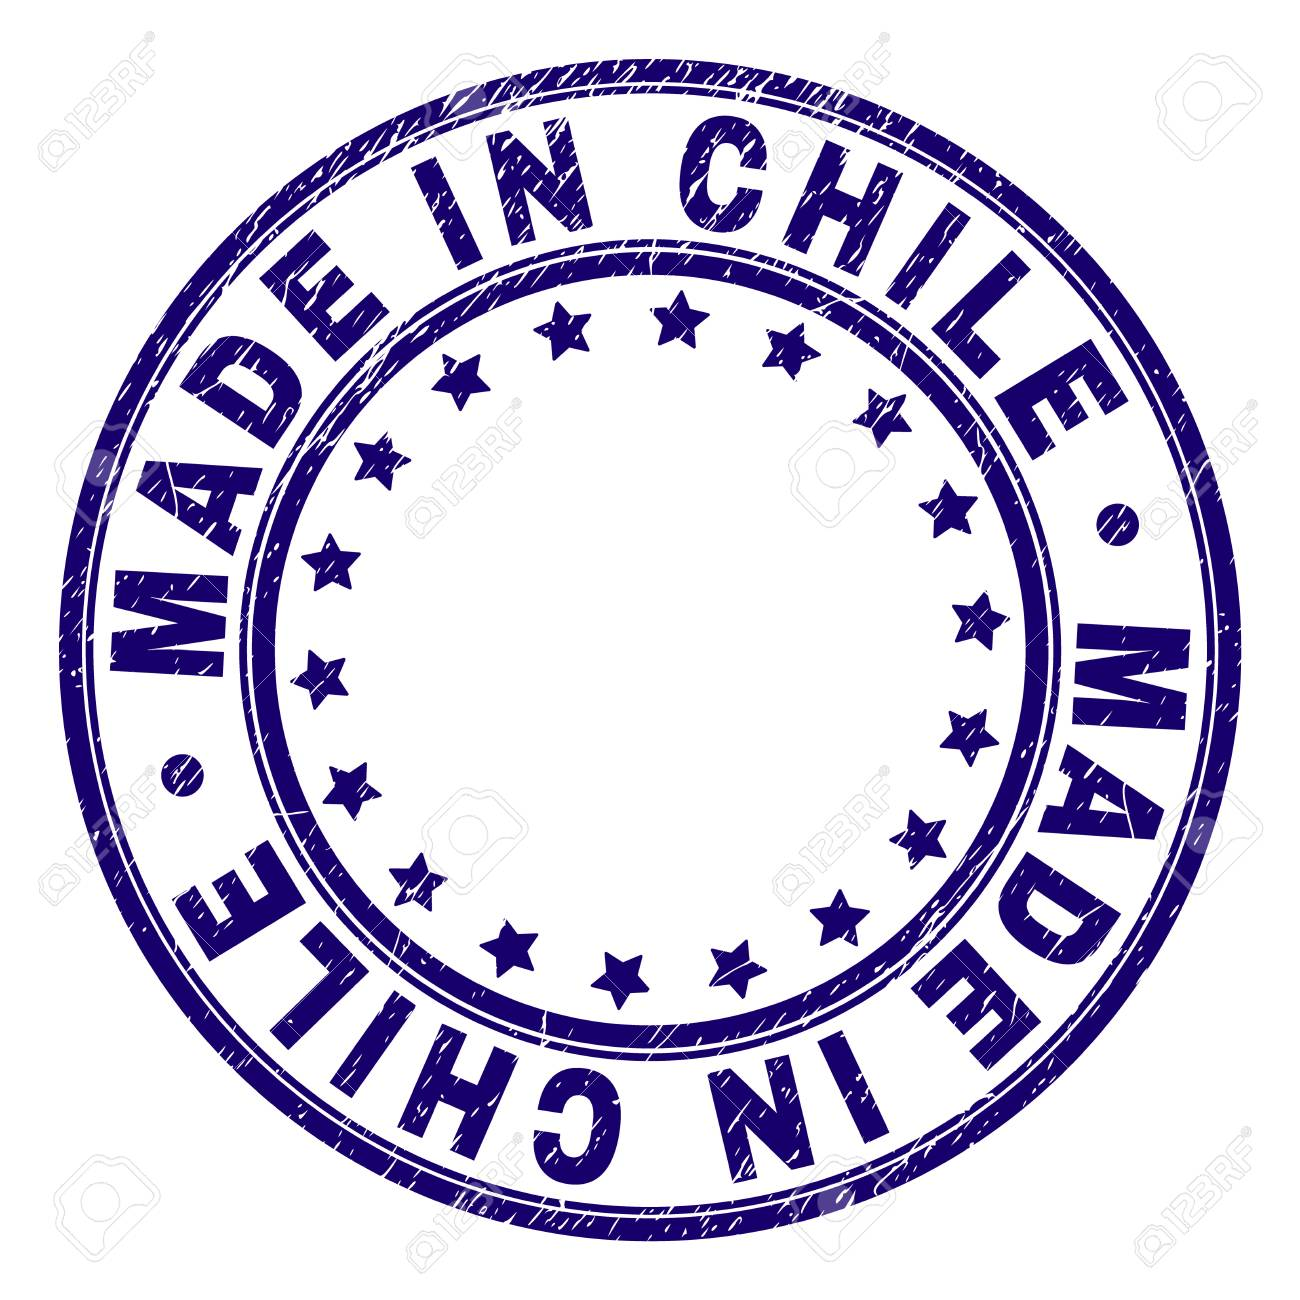 MADE IN CHILE Stamp Seal Imprint With Grunge Texture Designed Circles And Stars